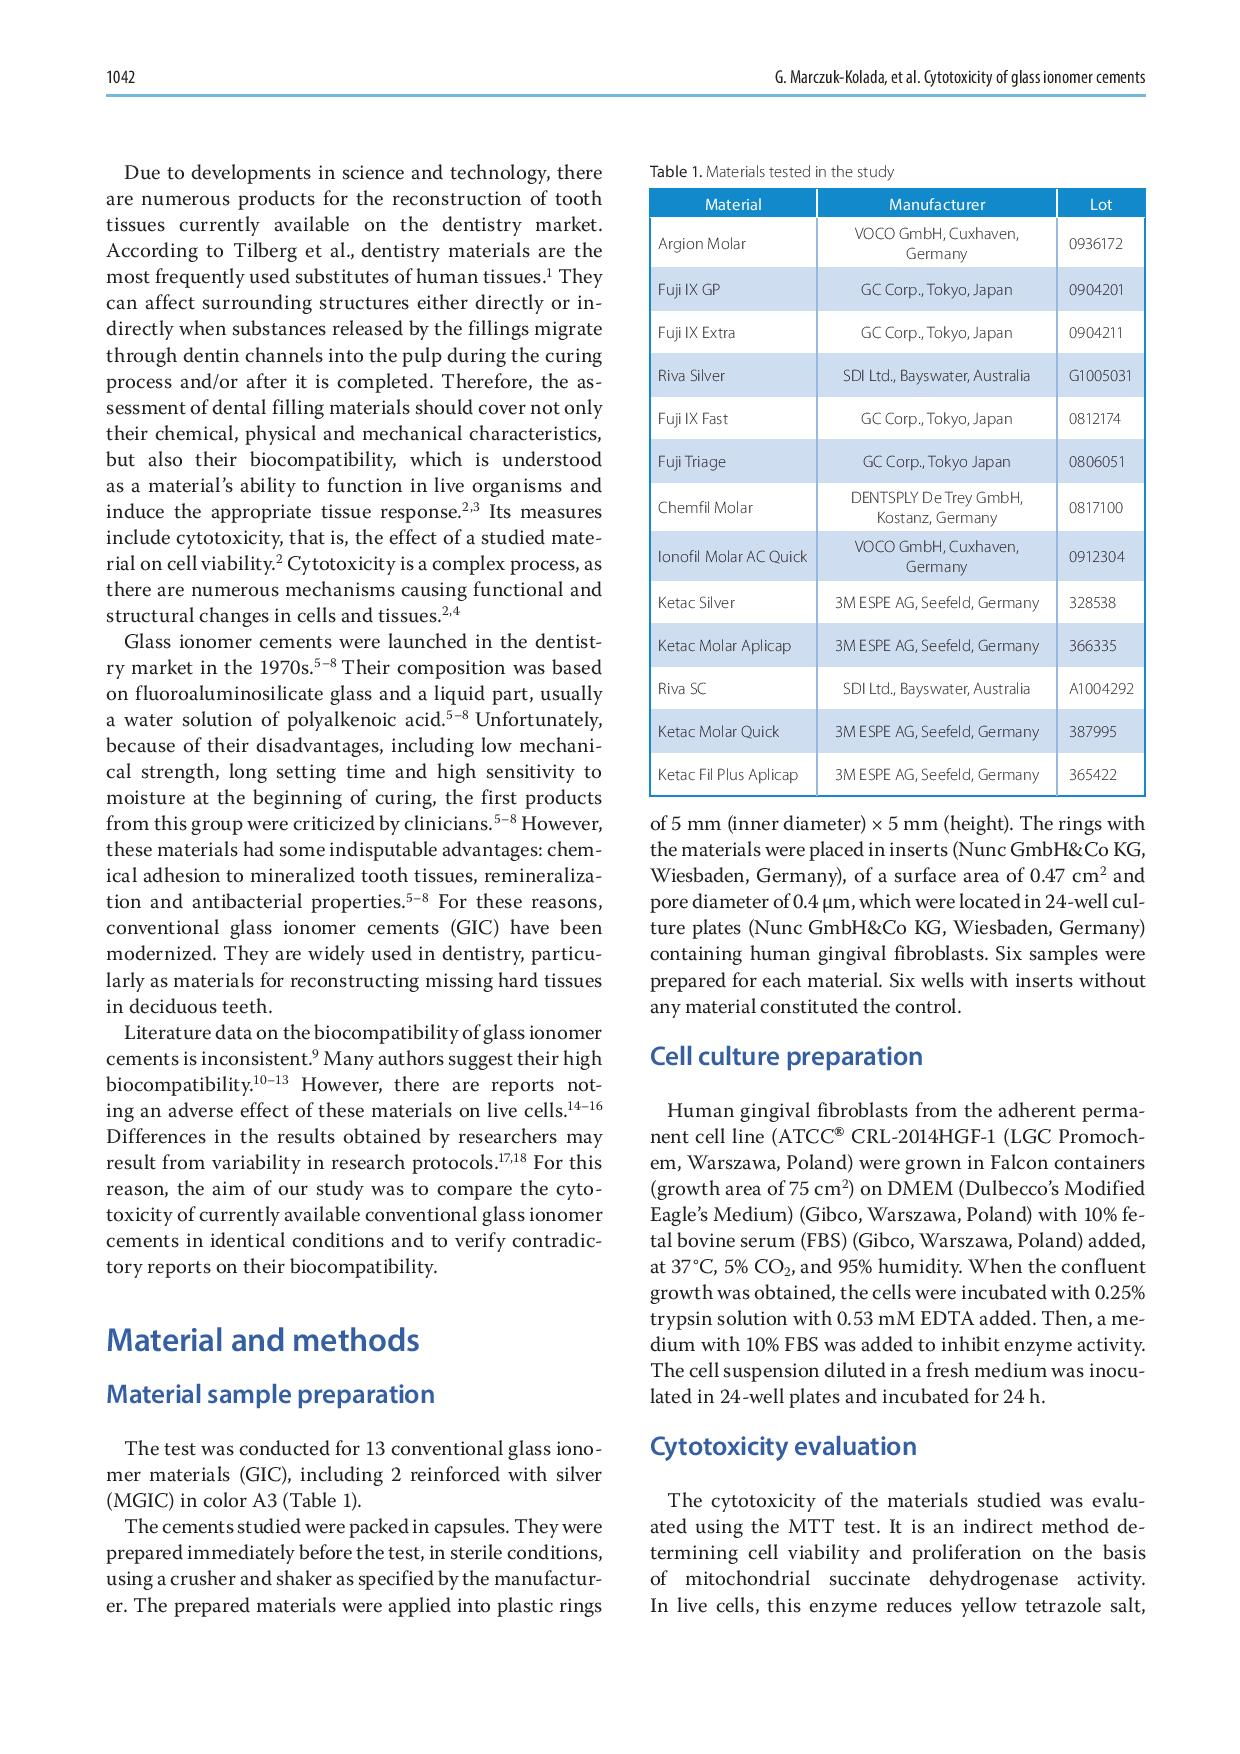 Glass cytotoxicity low-page-002